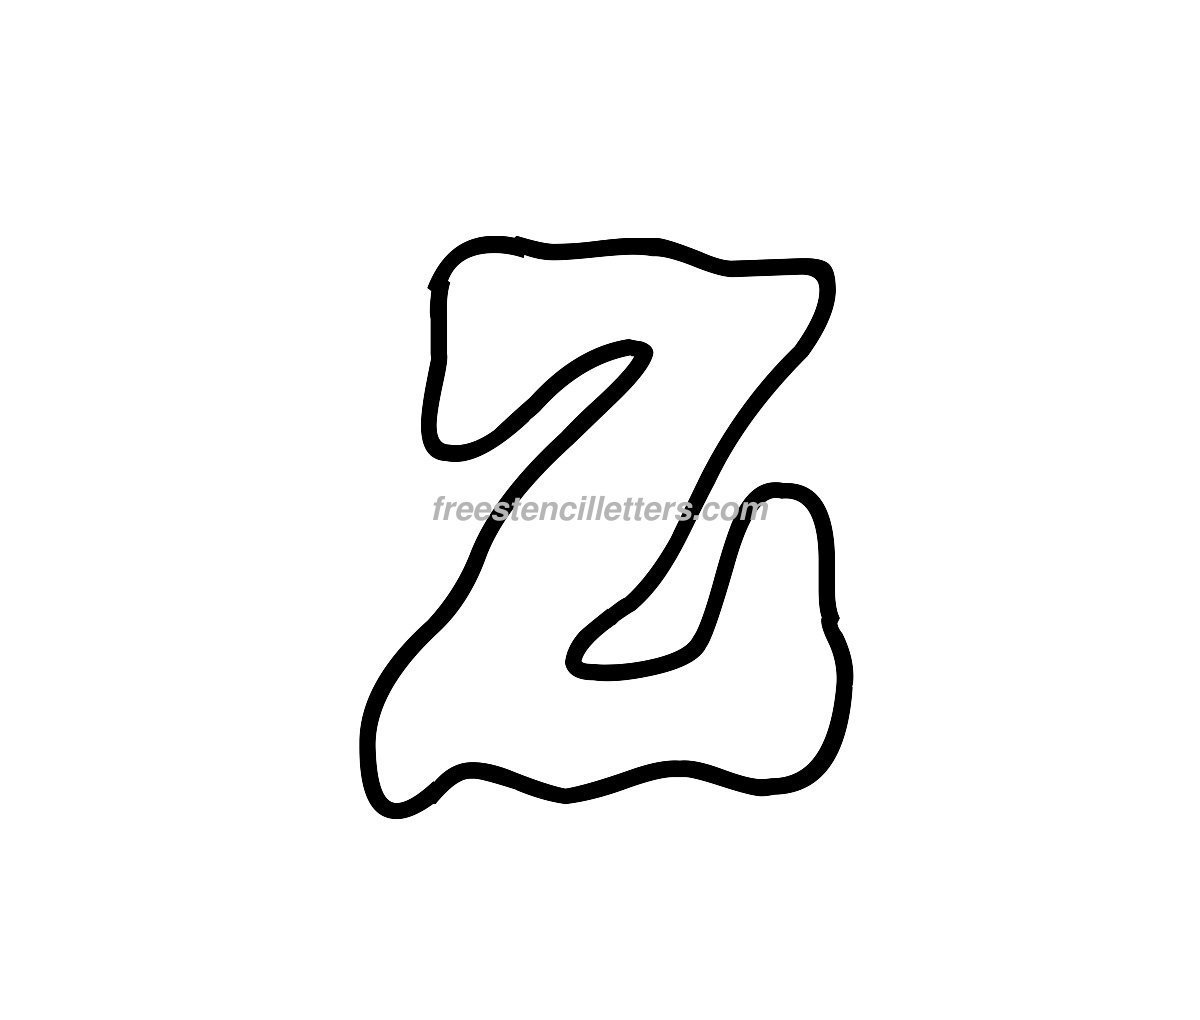 Download Print Z Letter Stencil to print and cut out